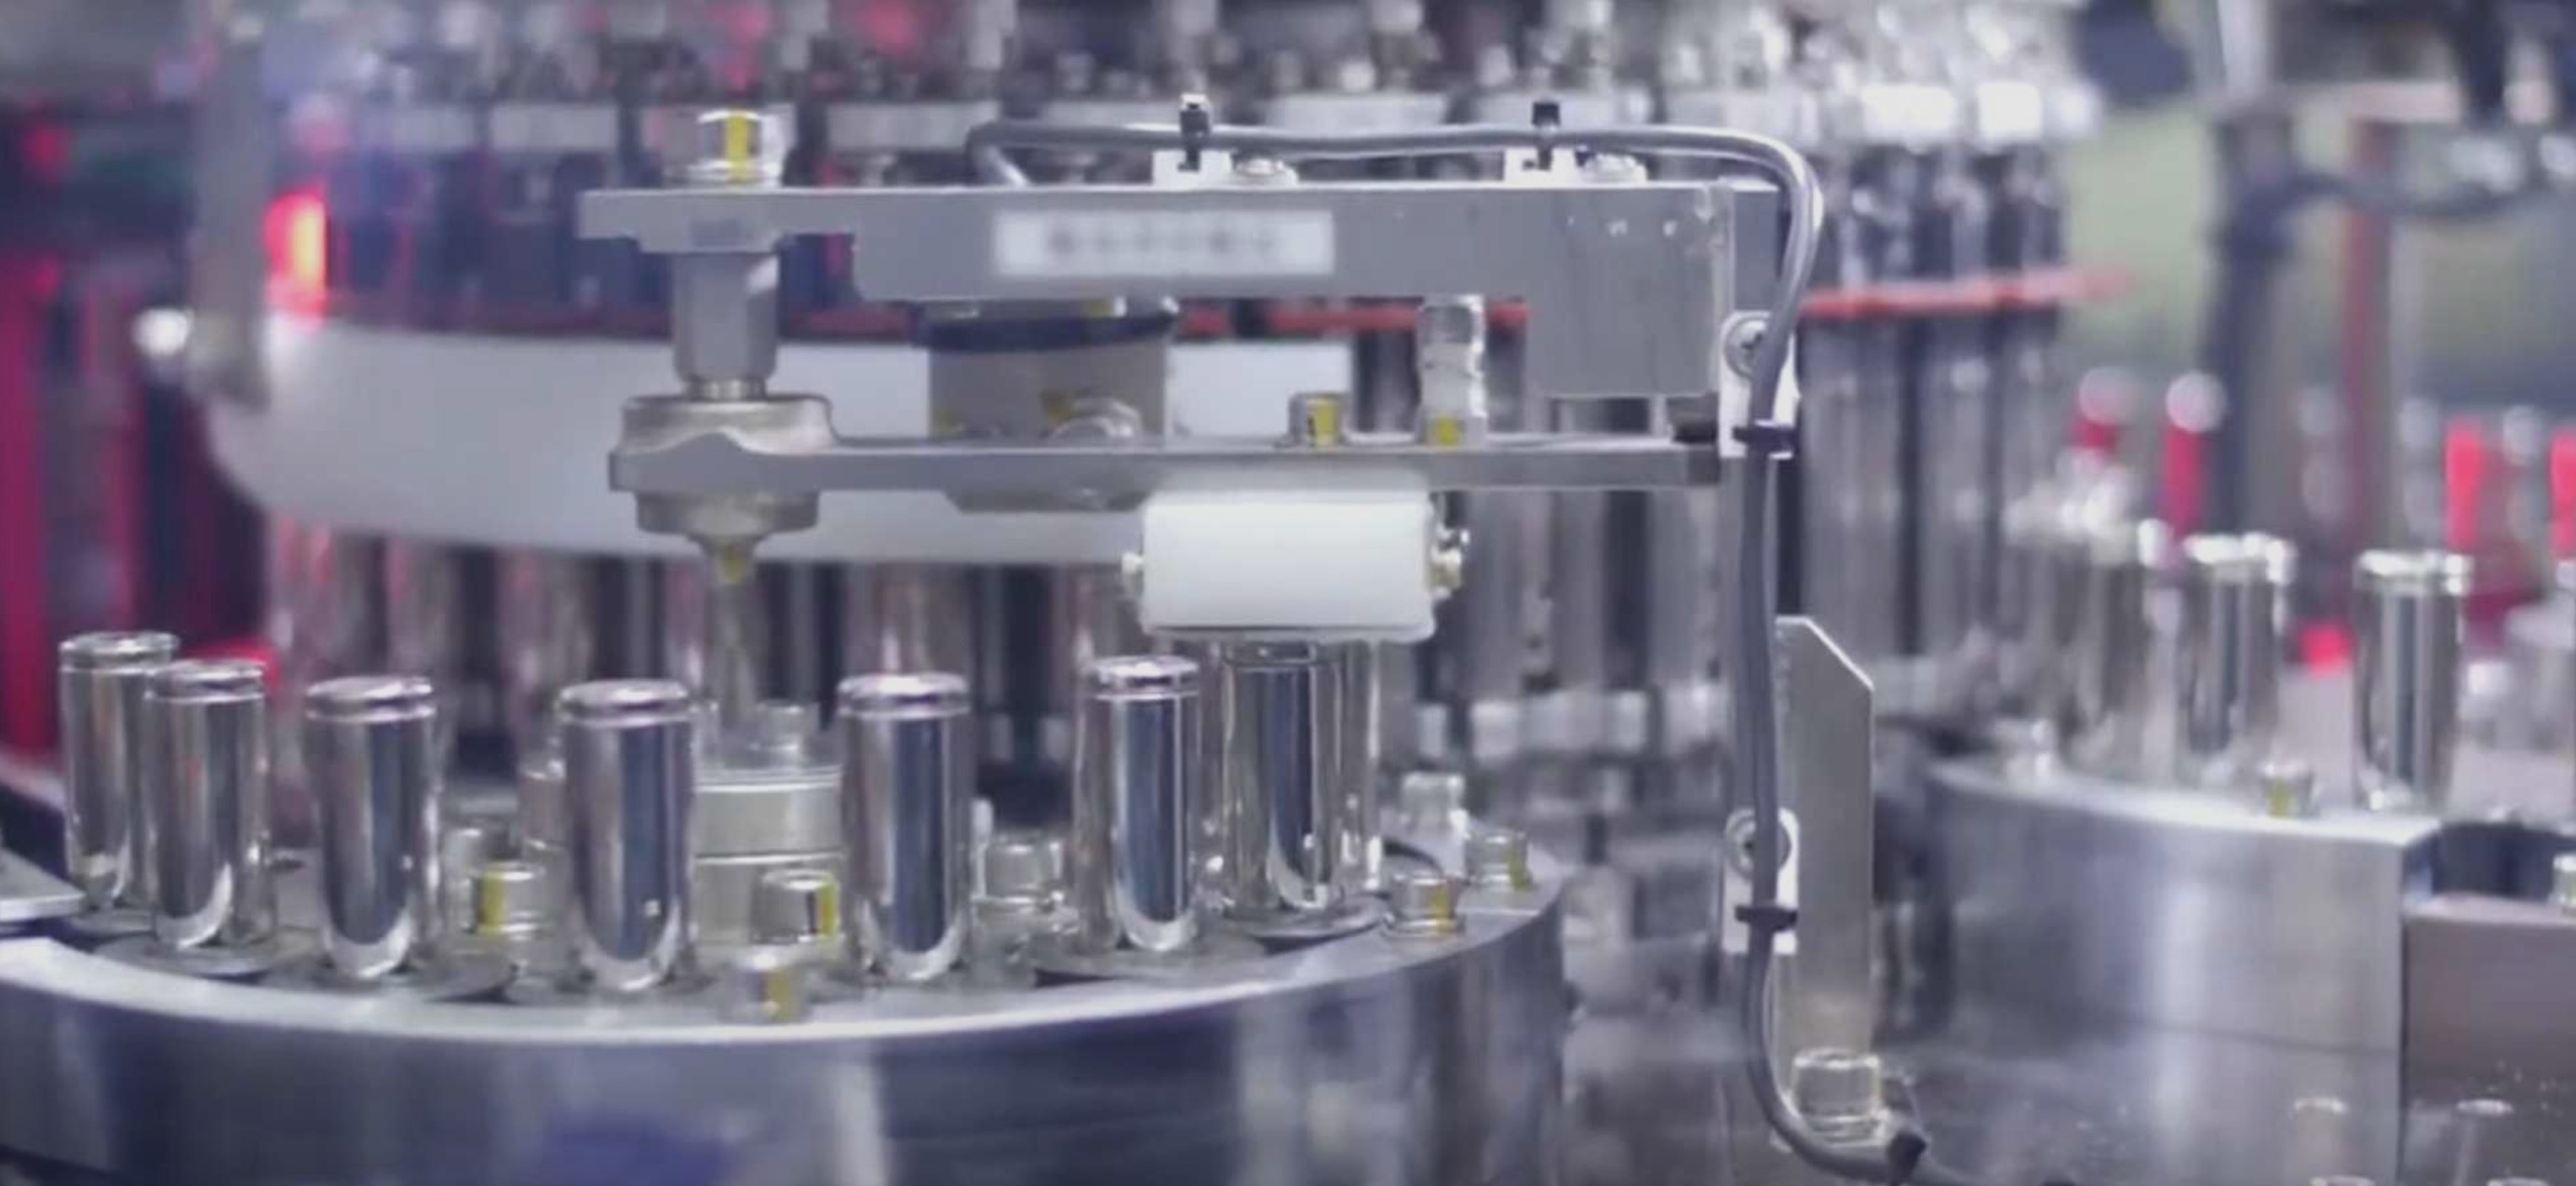 Tesla Is Building A Pilot Battery Cell Manufacturing Line In Fremont Getting Into The Cell Business Electrek